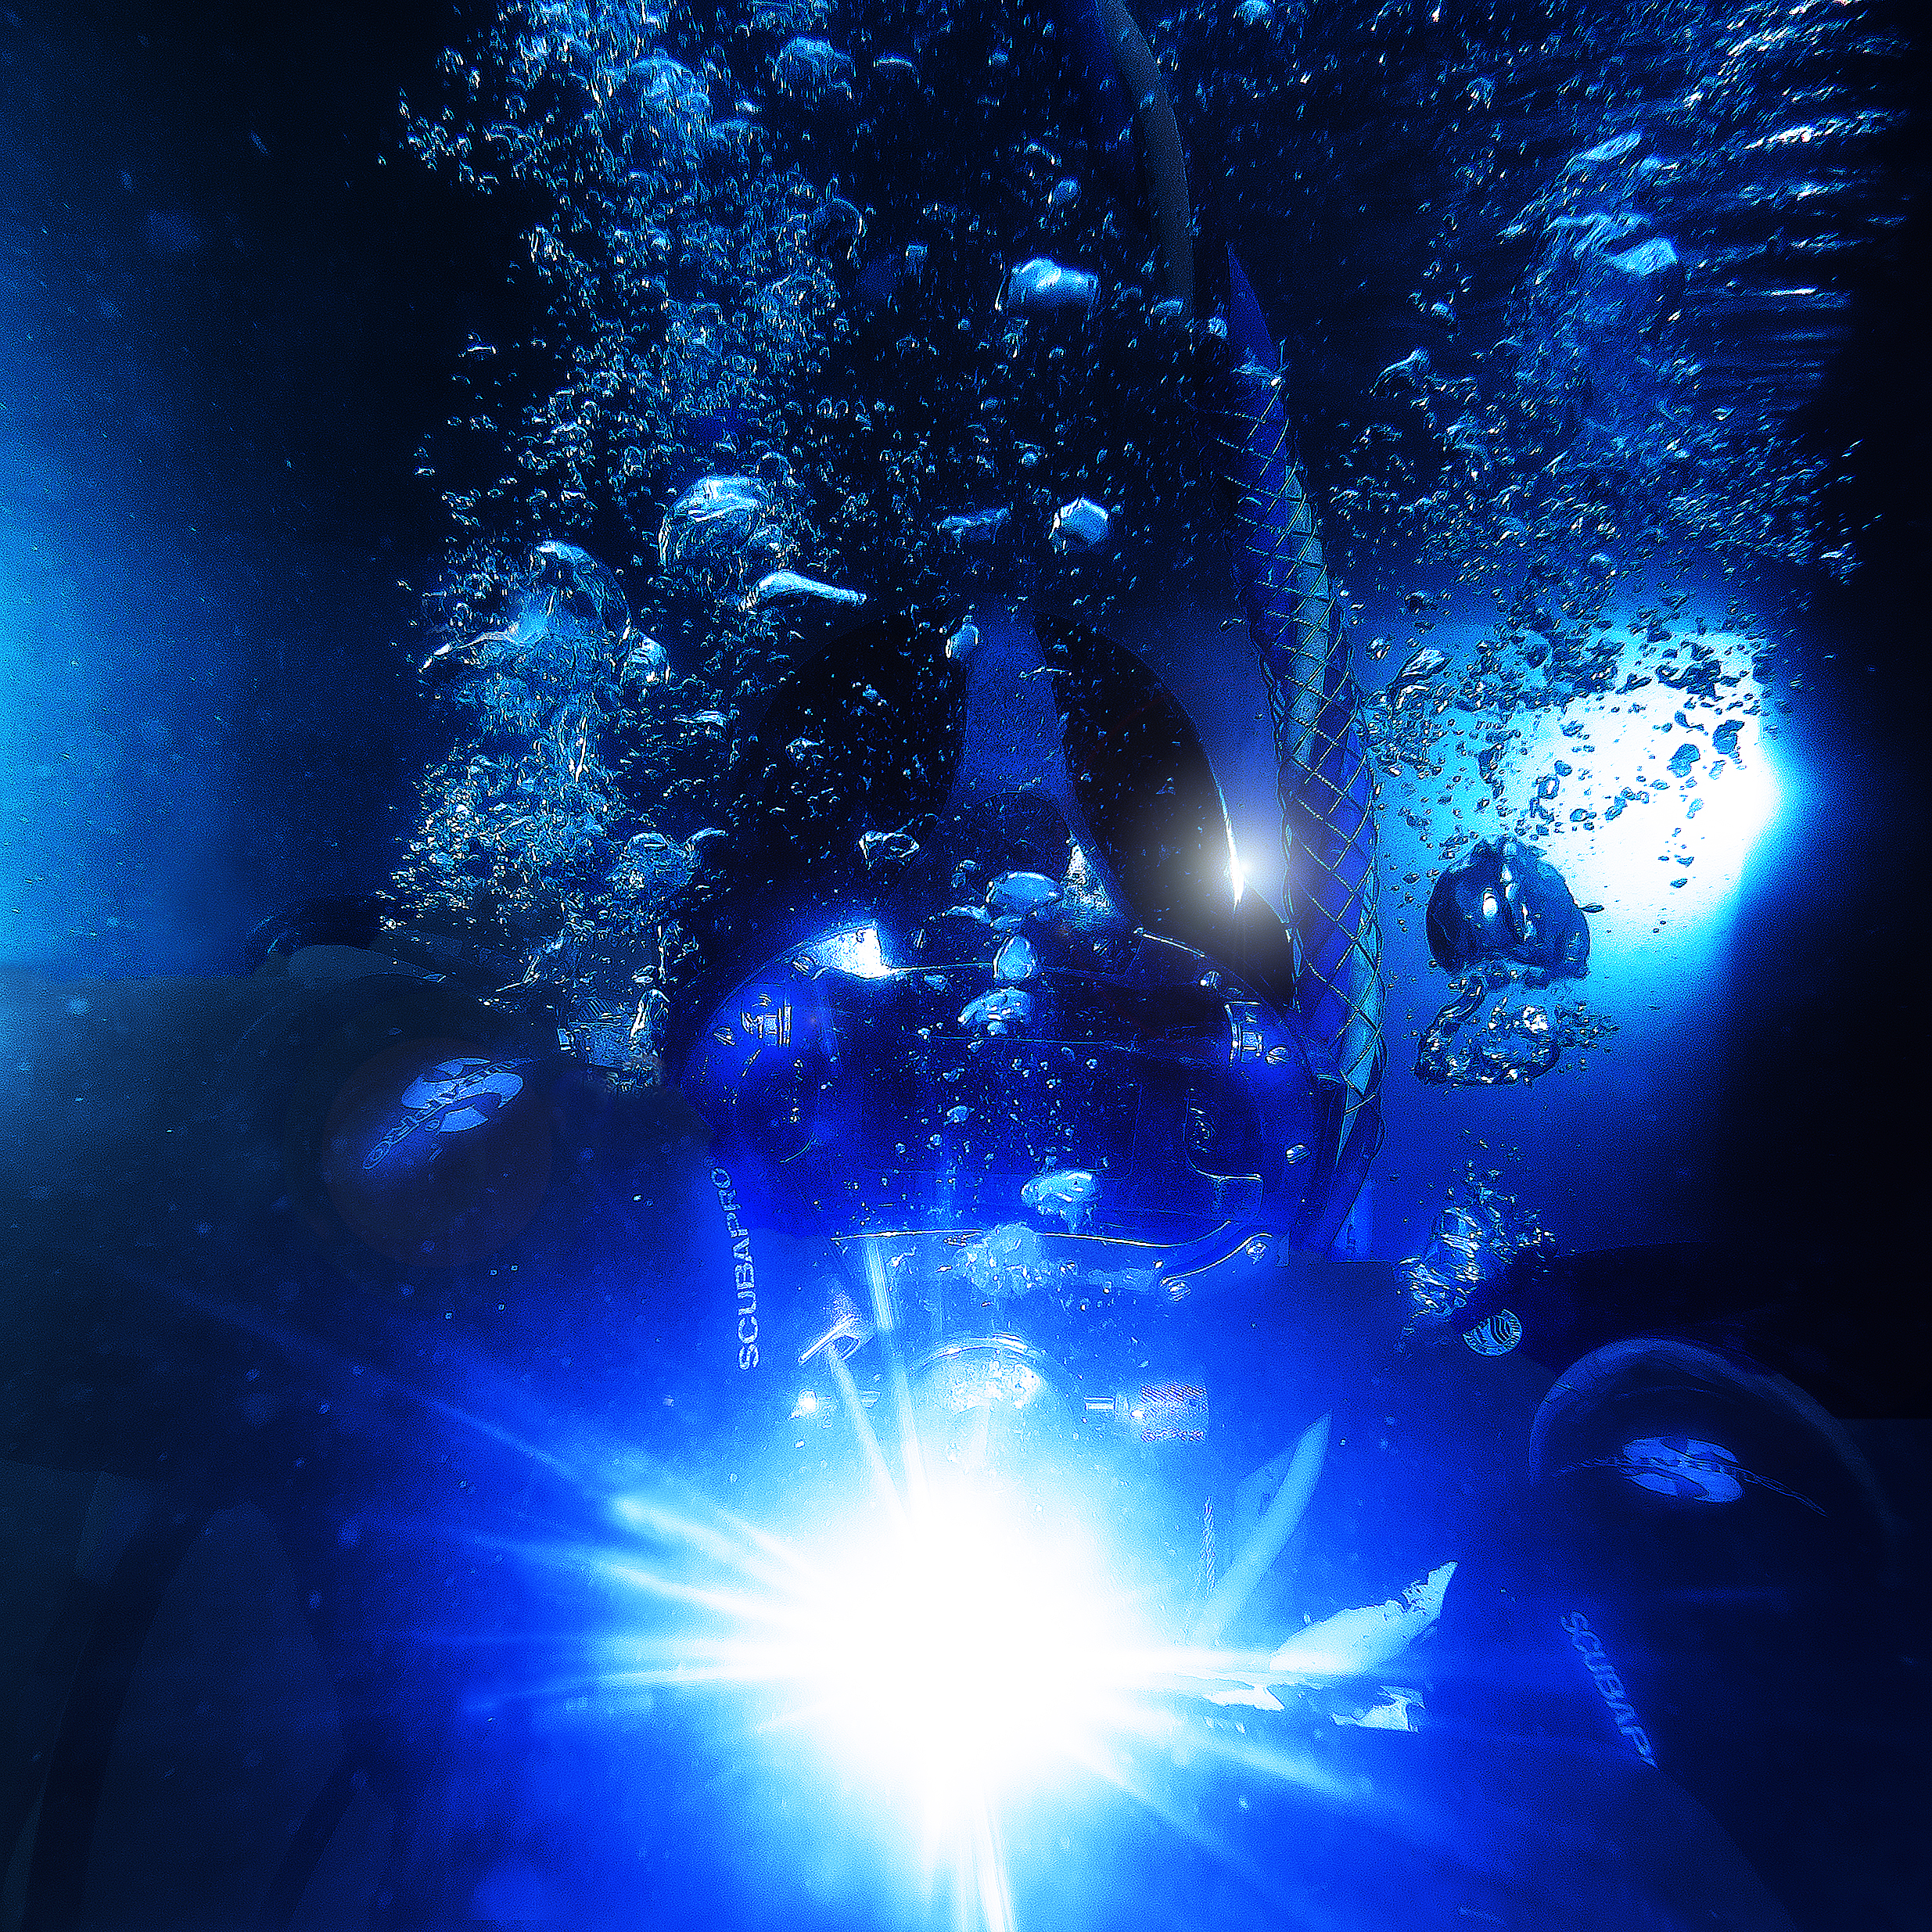 Army diver with underwater welding